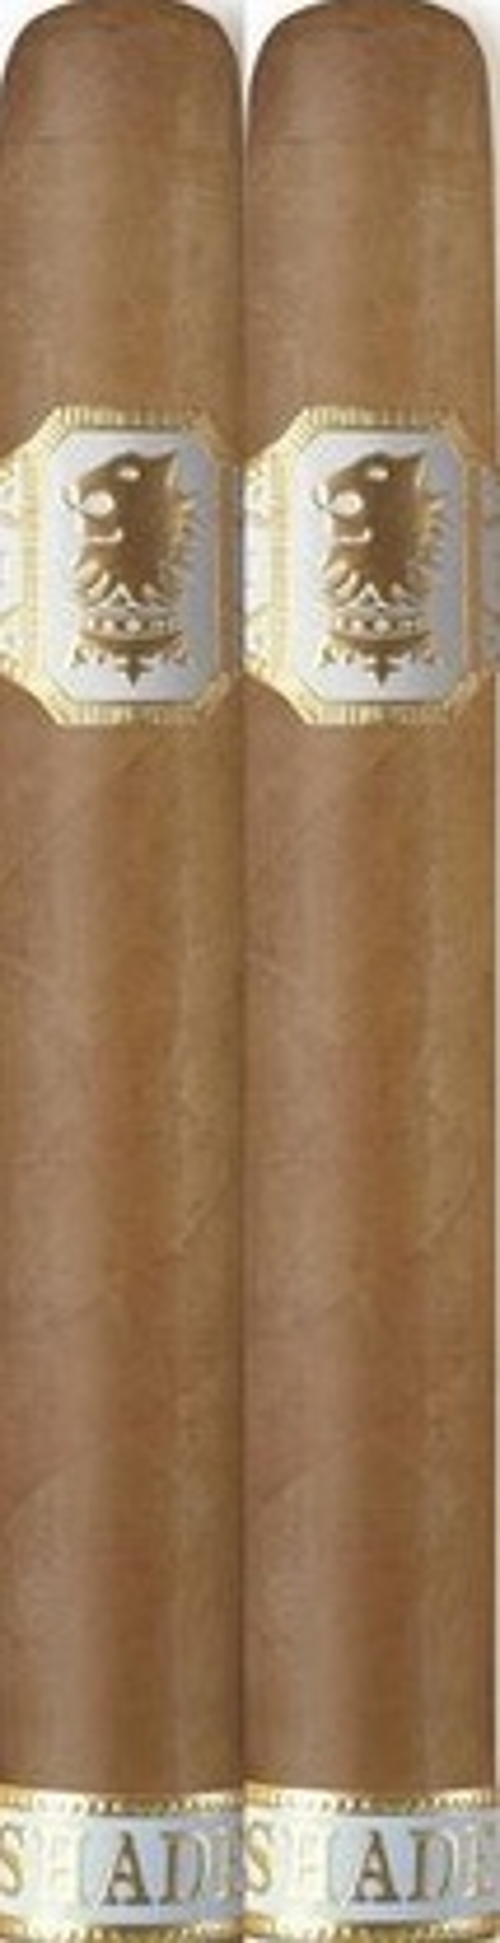 Group C Liga Undercrown Shade Gran Toro 2 Pack of Cigars..........with Qualifying Purchase Only!